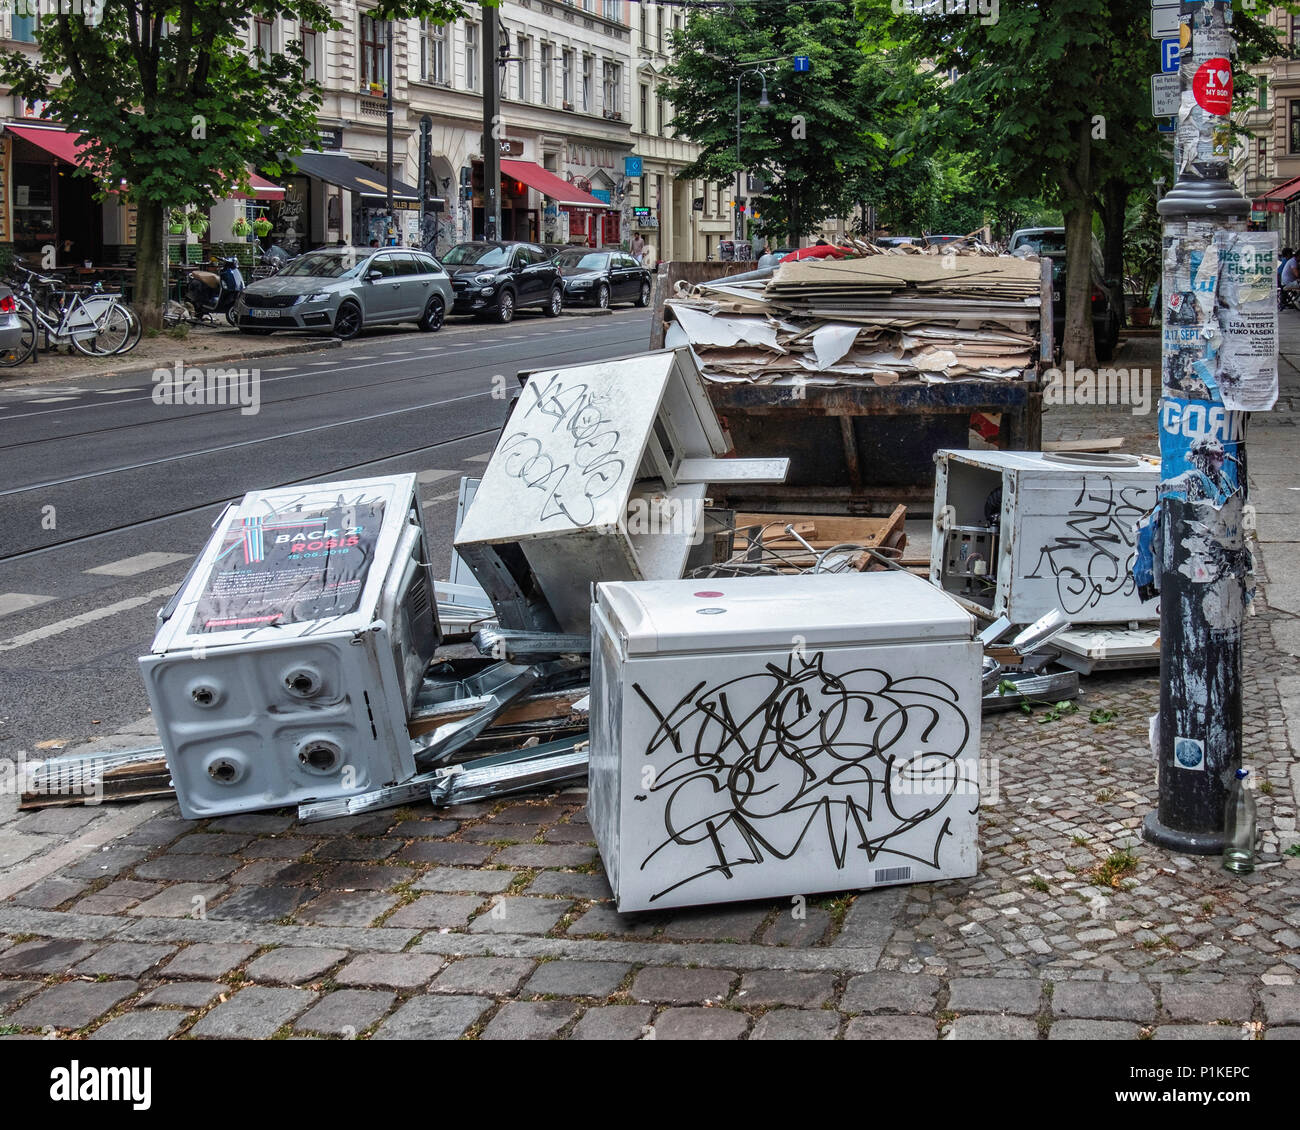 White Trash Berlin Stockfotos & White Trash Berlin Bilder - Alamy